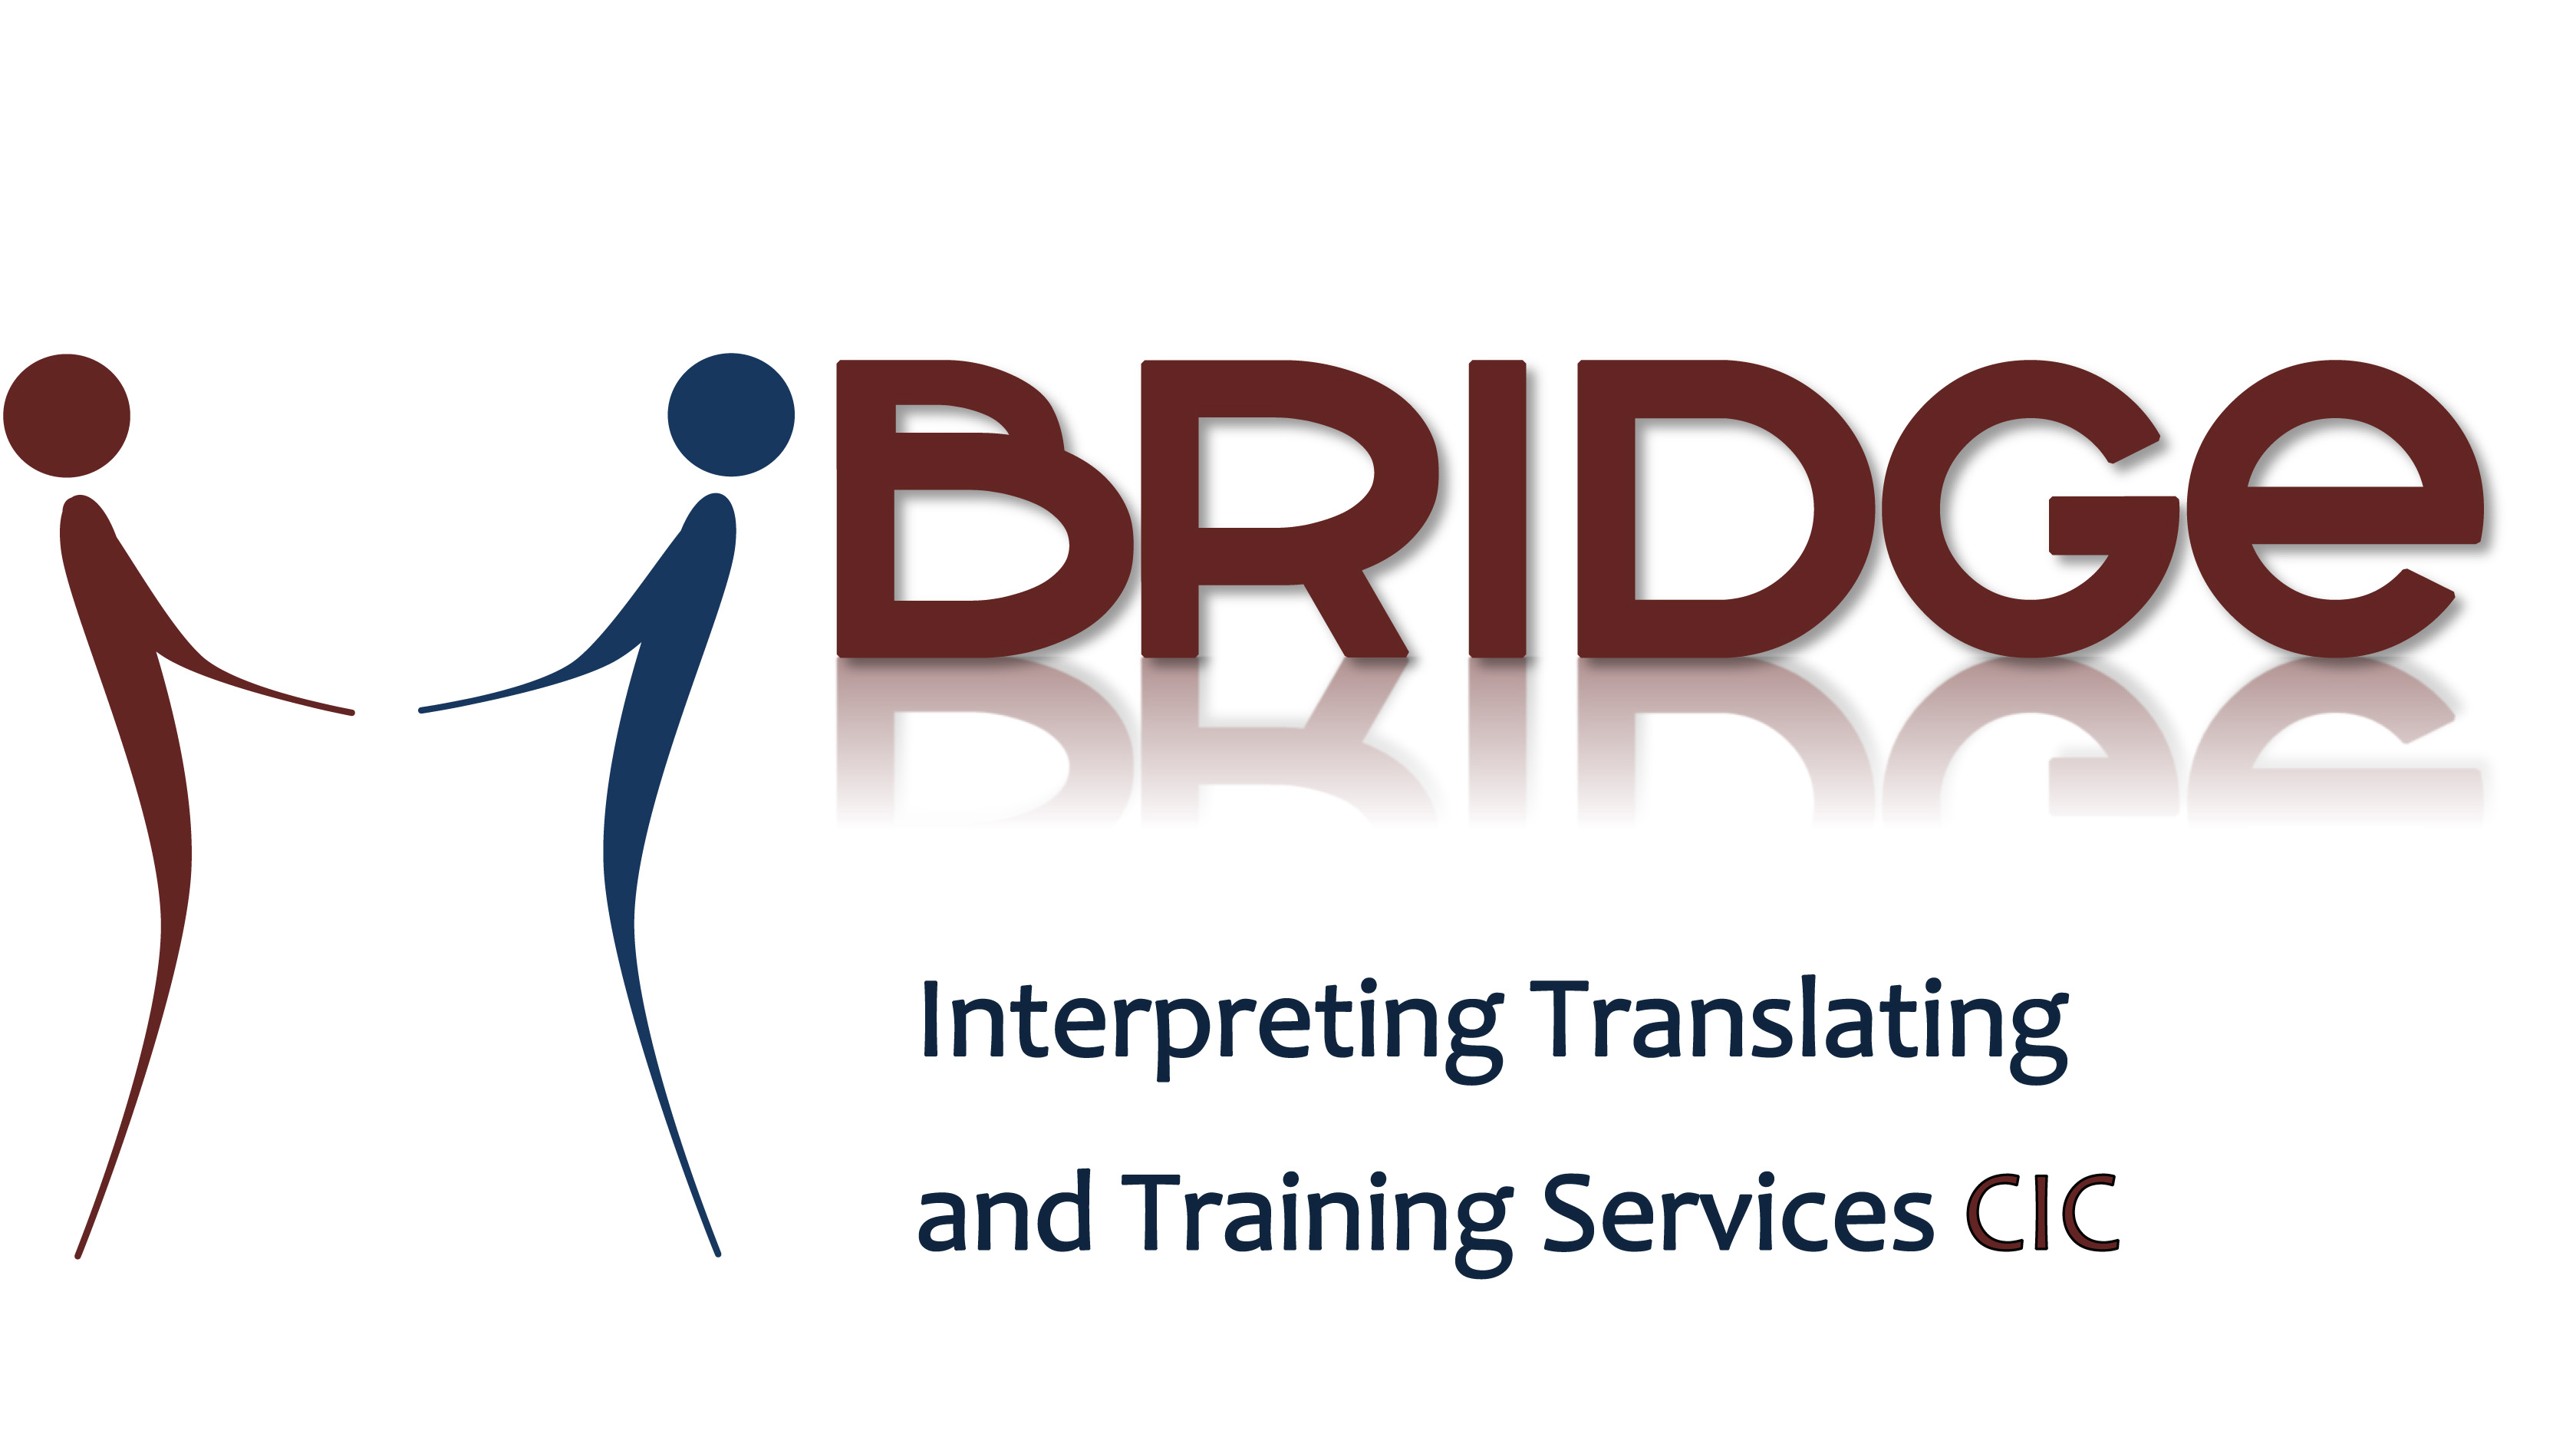 More about Bridge Interpreting Translating and Training Services